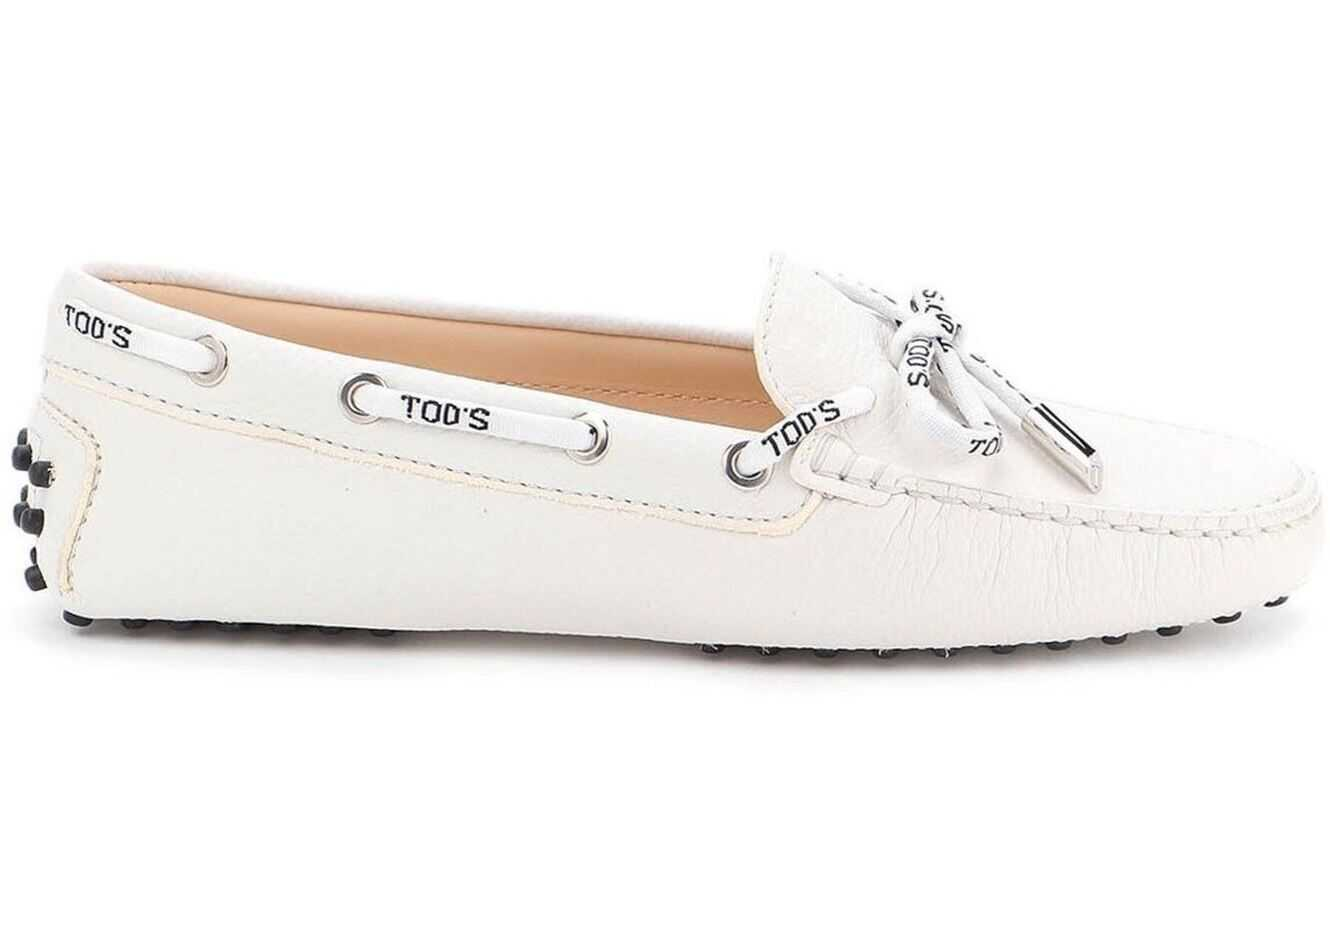 TOD'S Gommino Hammered Leather Loafers White